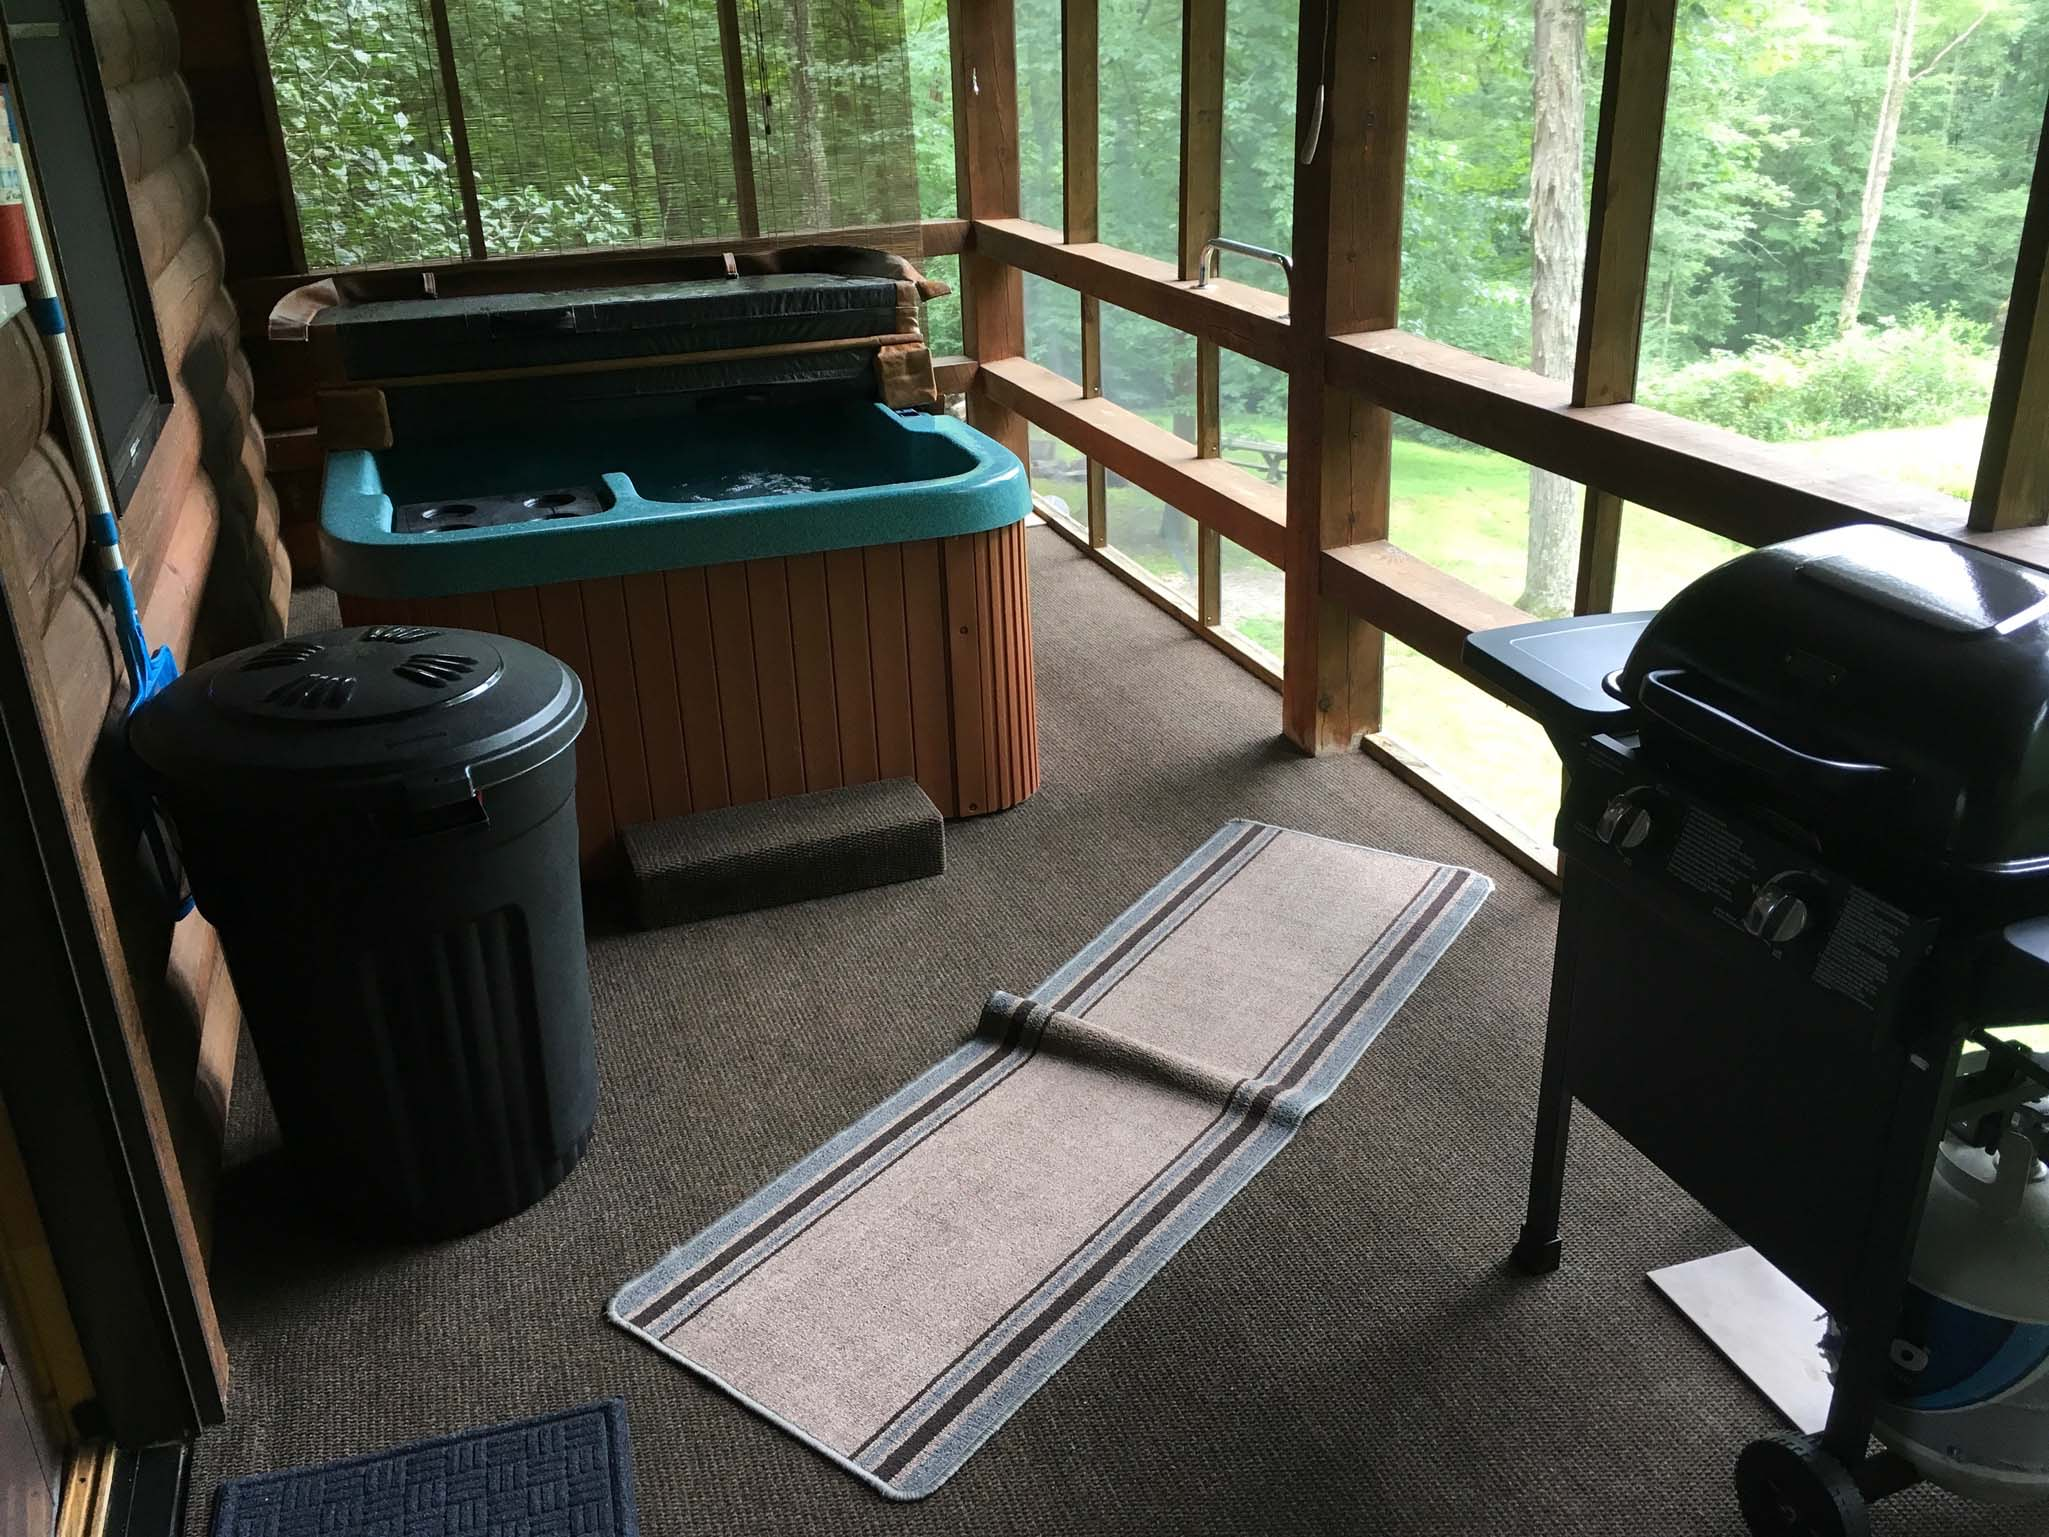 The Blue Jay Cabin - Enjoy the hot tub, gas grill, and table and chairs on the screened back deck. A great place to to soak the stress away or enjoy a cup of coffee in the morning.